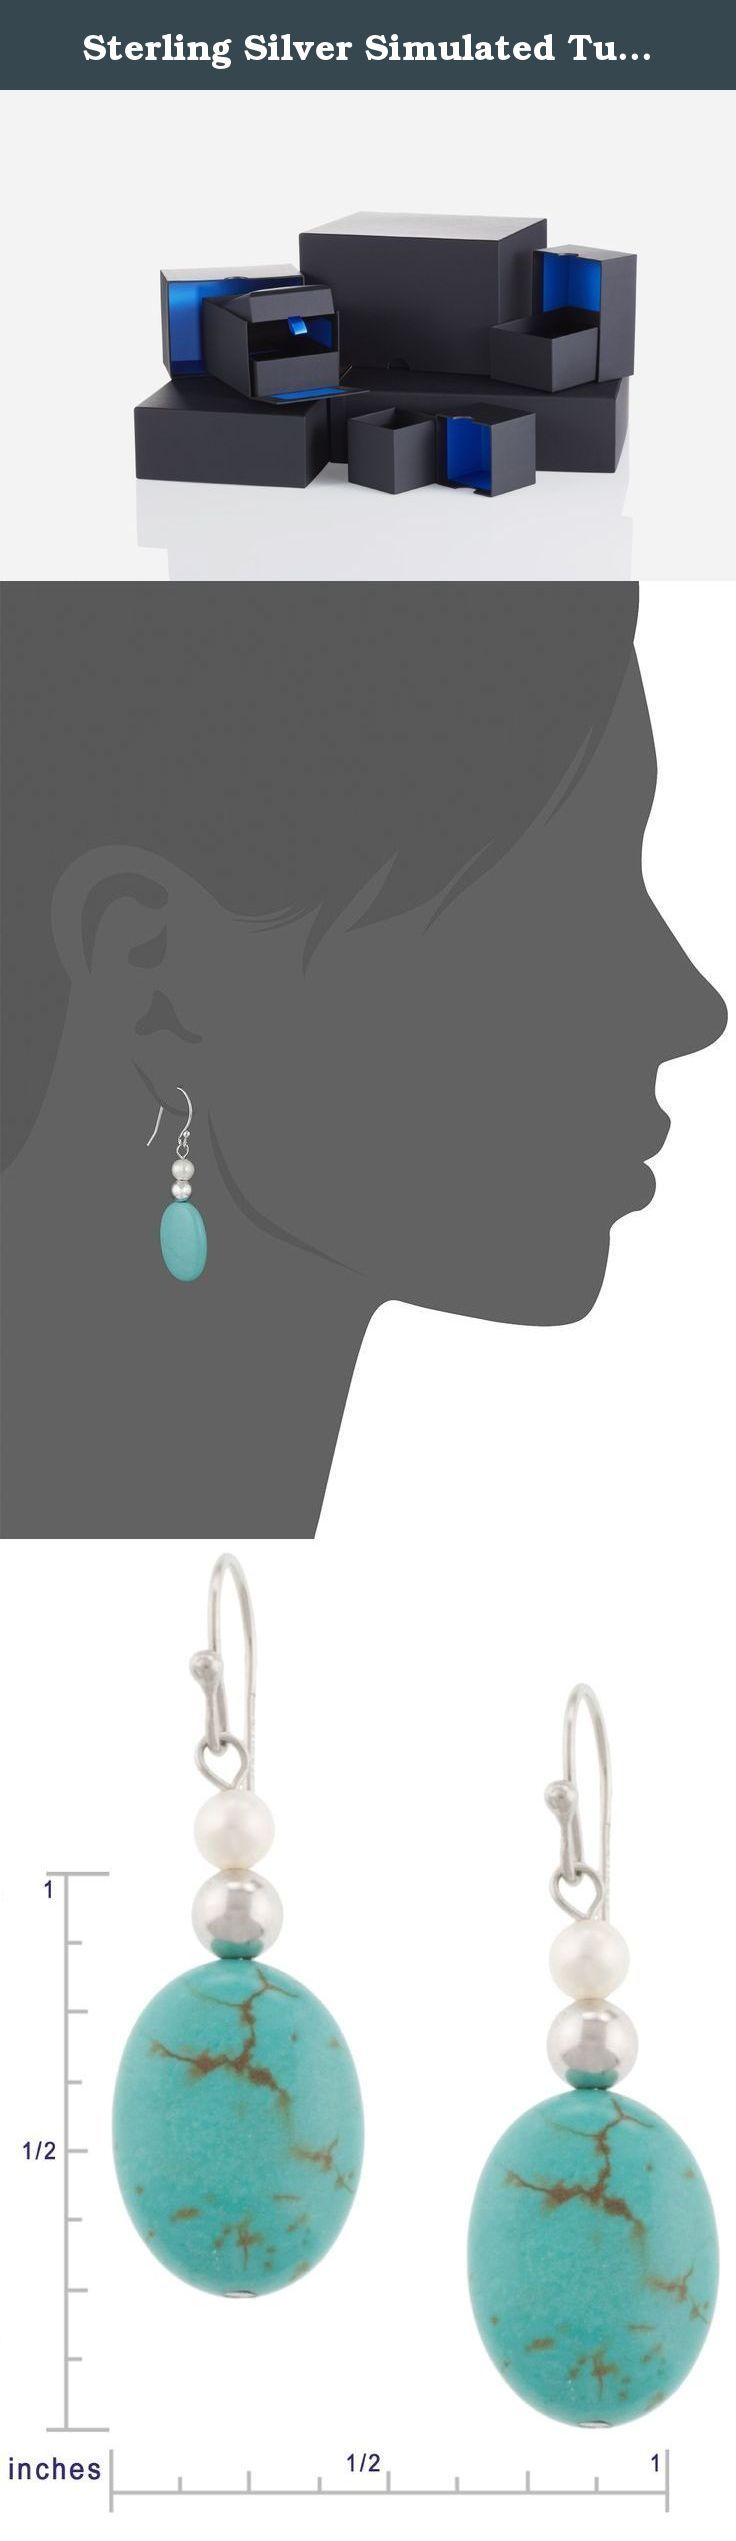 Sterling Silver Simulated Turquoise Oval Bead and White Freshwater Cultured Pearl Drop Earrings. Capture the true blue beauty of turquoise when donning the Sterling Silver Turquoise Oval Bead and White Pearl Drop Earrings. Hanging from each fishhook backing is a beautiful oval-shaped turquoise bead that shows off its brilliant blue hue and organic look. The beads each contain dark lines, or natural definitions that create a one-of-a-kind look for each earring. Accenting each turquoise…